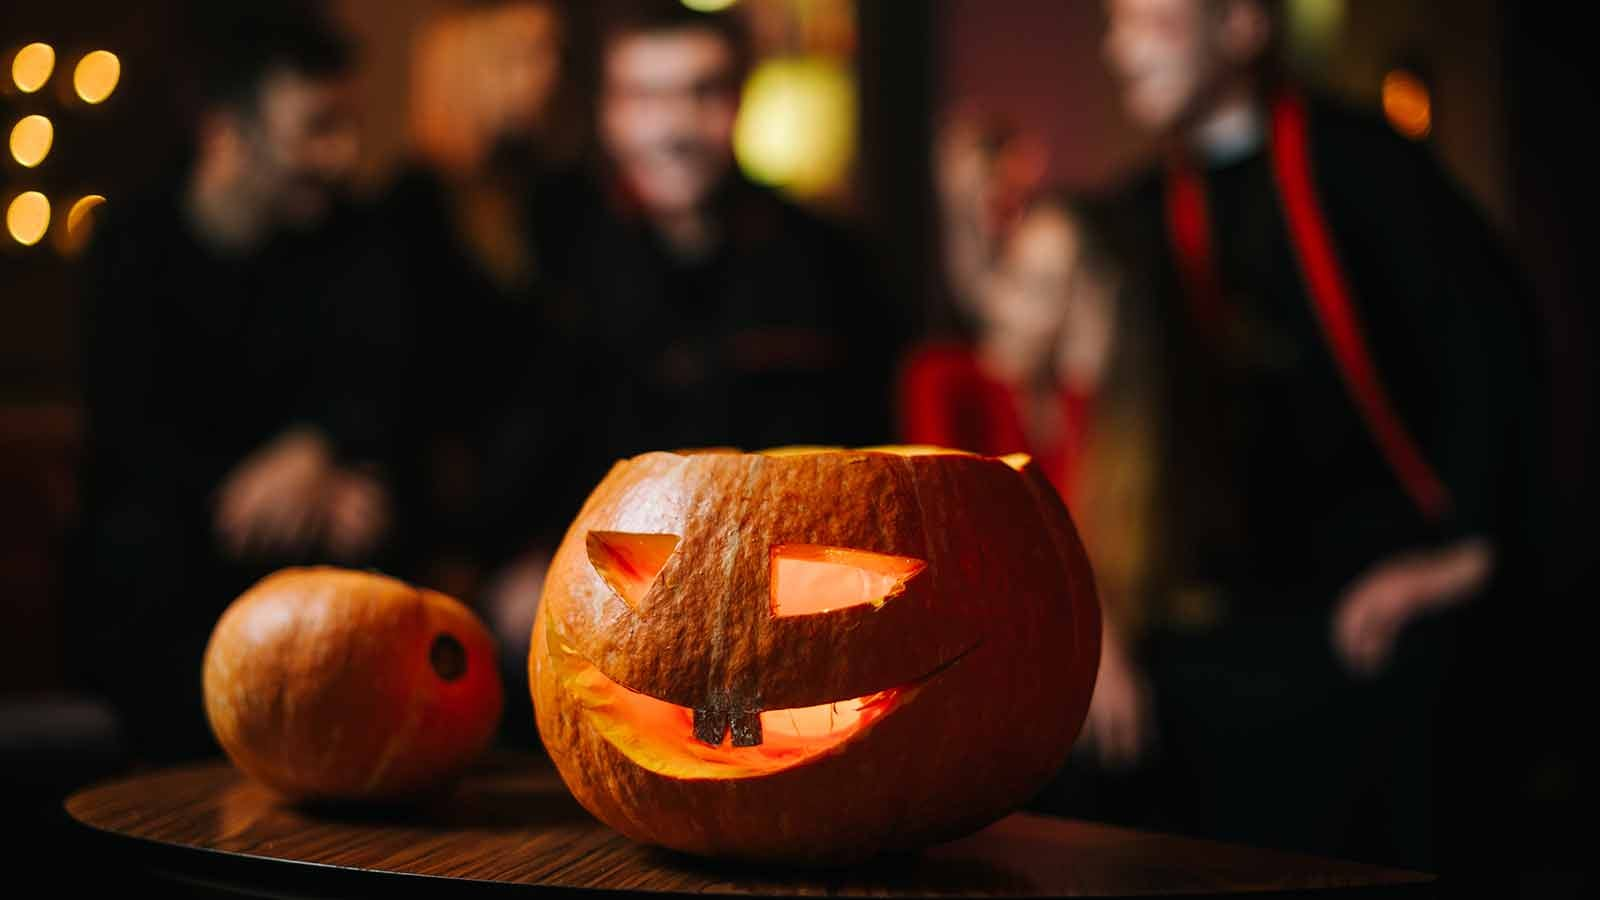 A glowing jack o' lantern sitting on a table with some Halloween party guests in the background.